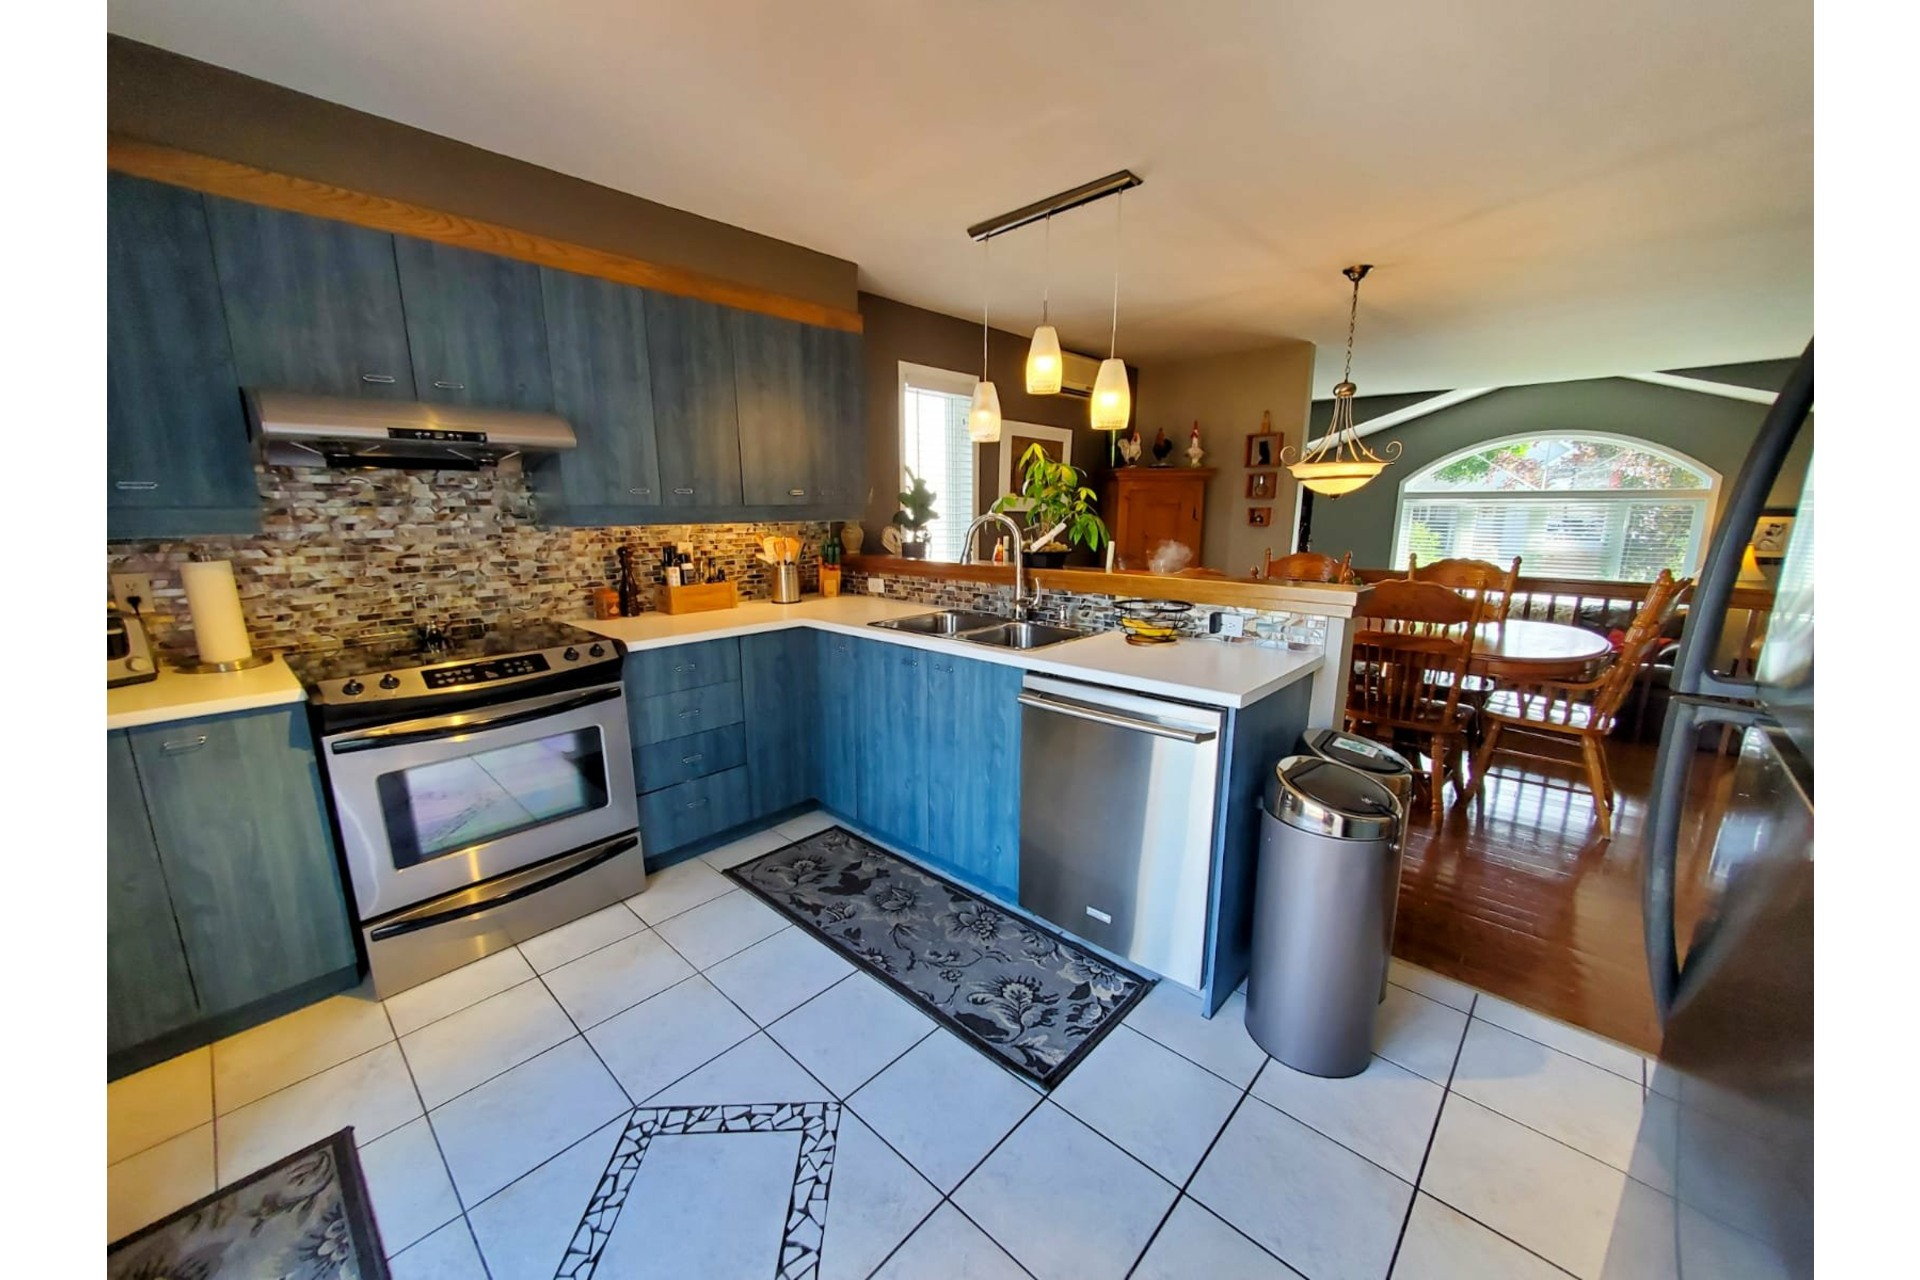 image 5 - House For sale Vaudreuil-Dorion - 12 rooms